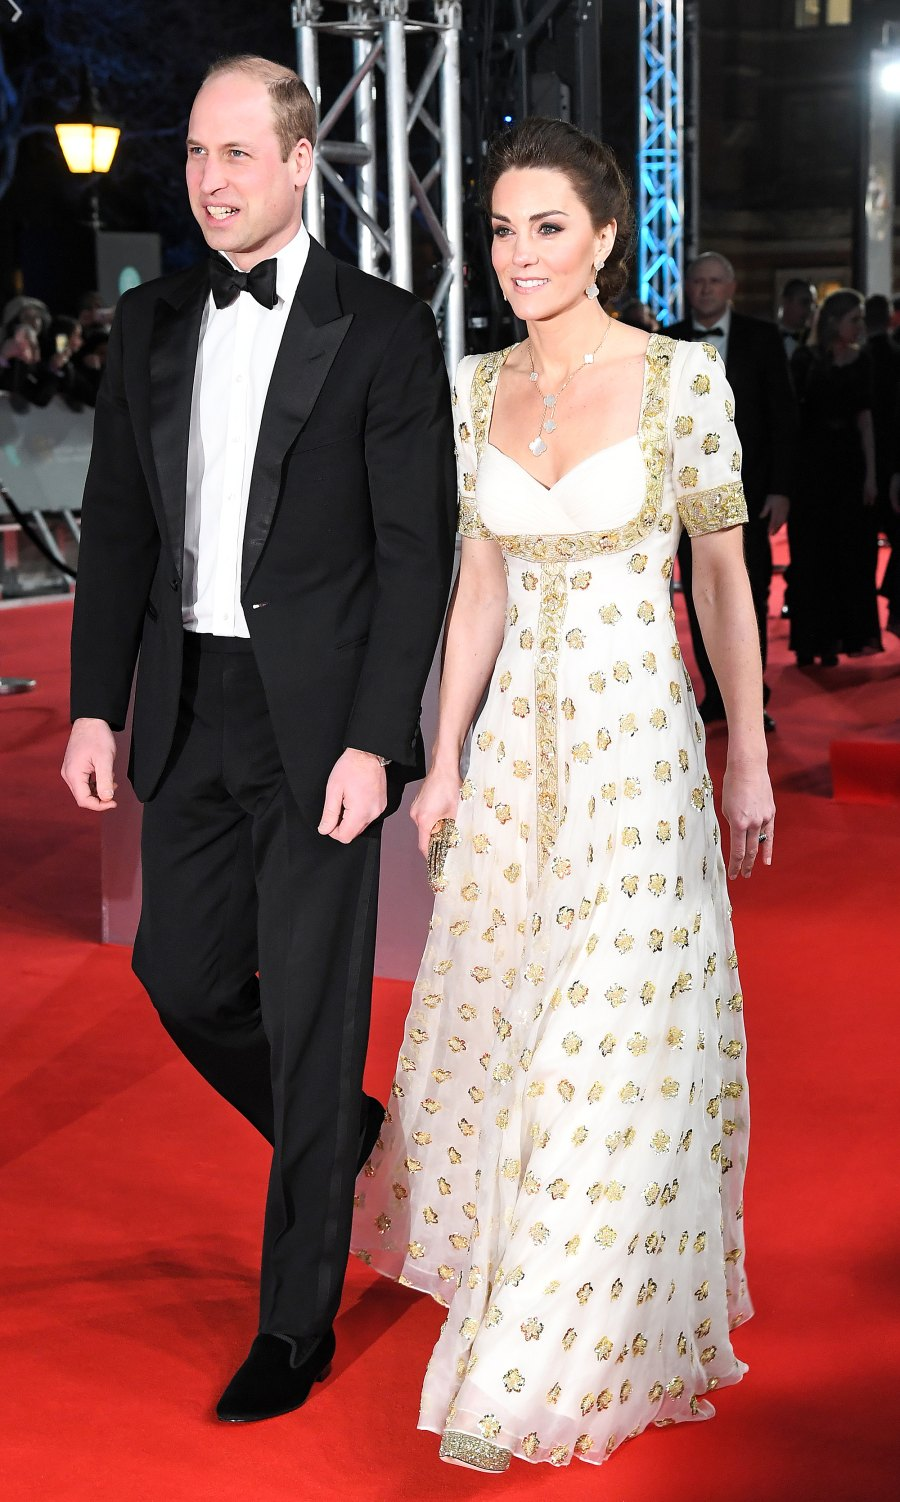 BAFTA Awards 2020 Duchess Kate and Prince William Arriving